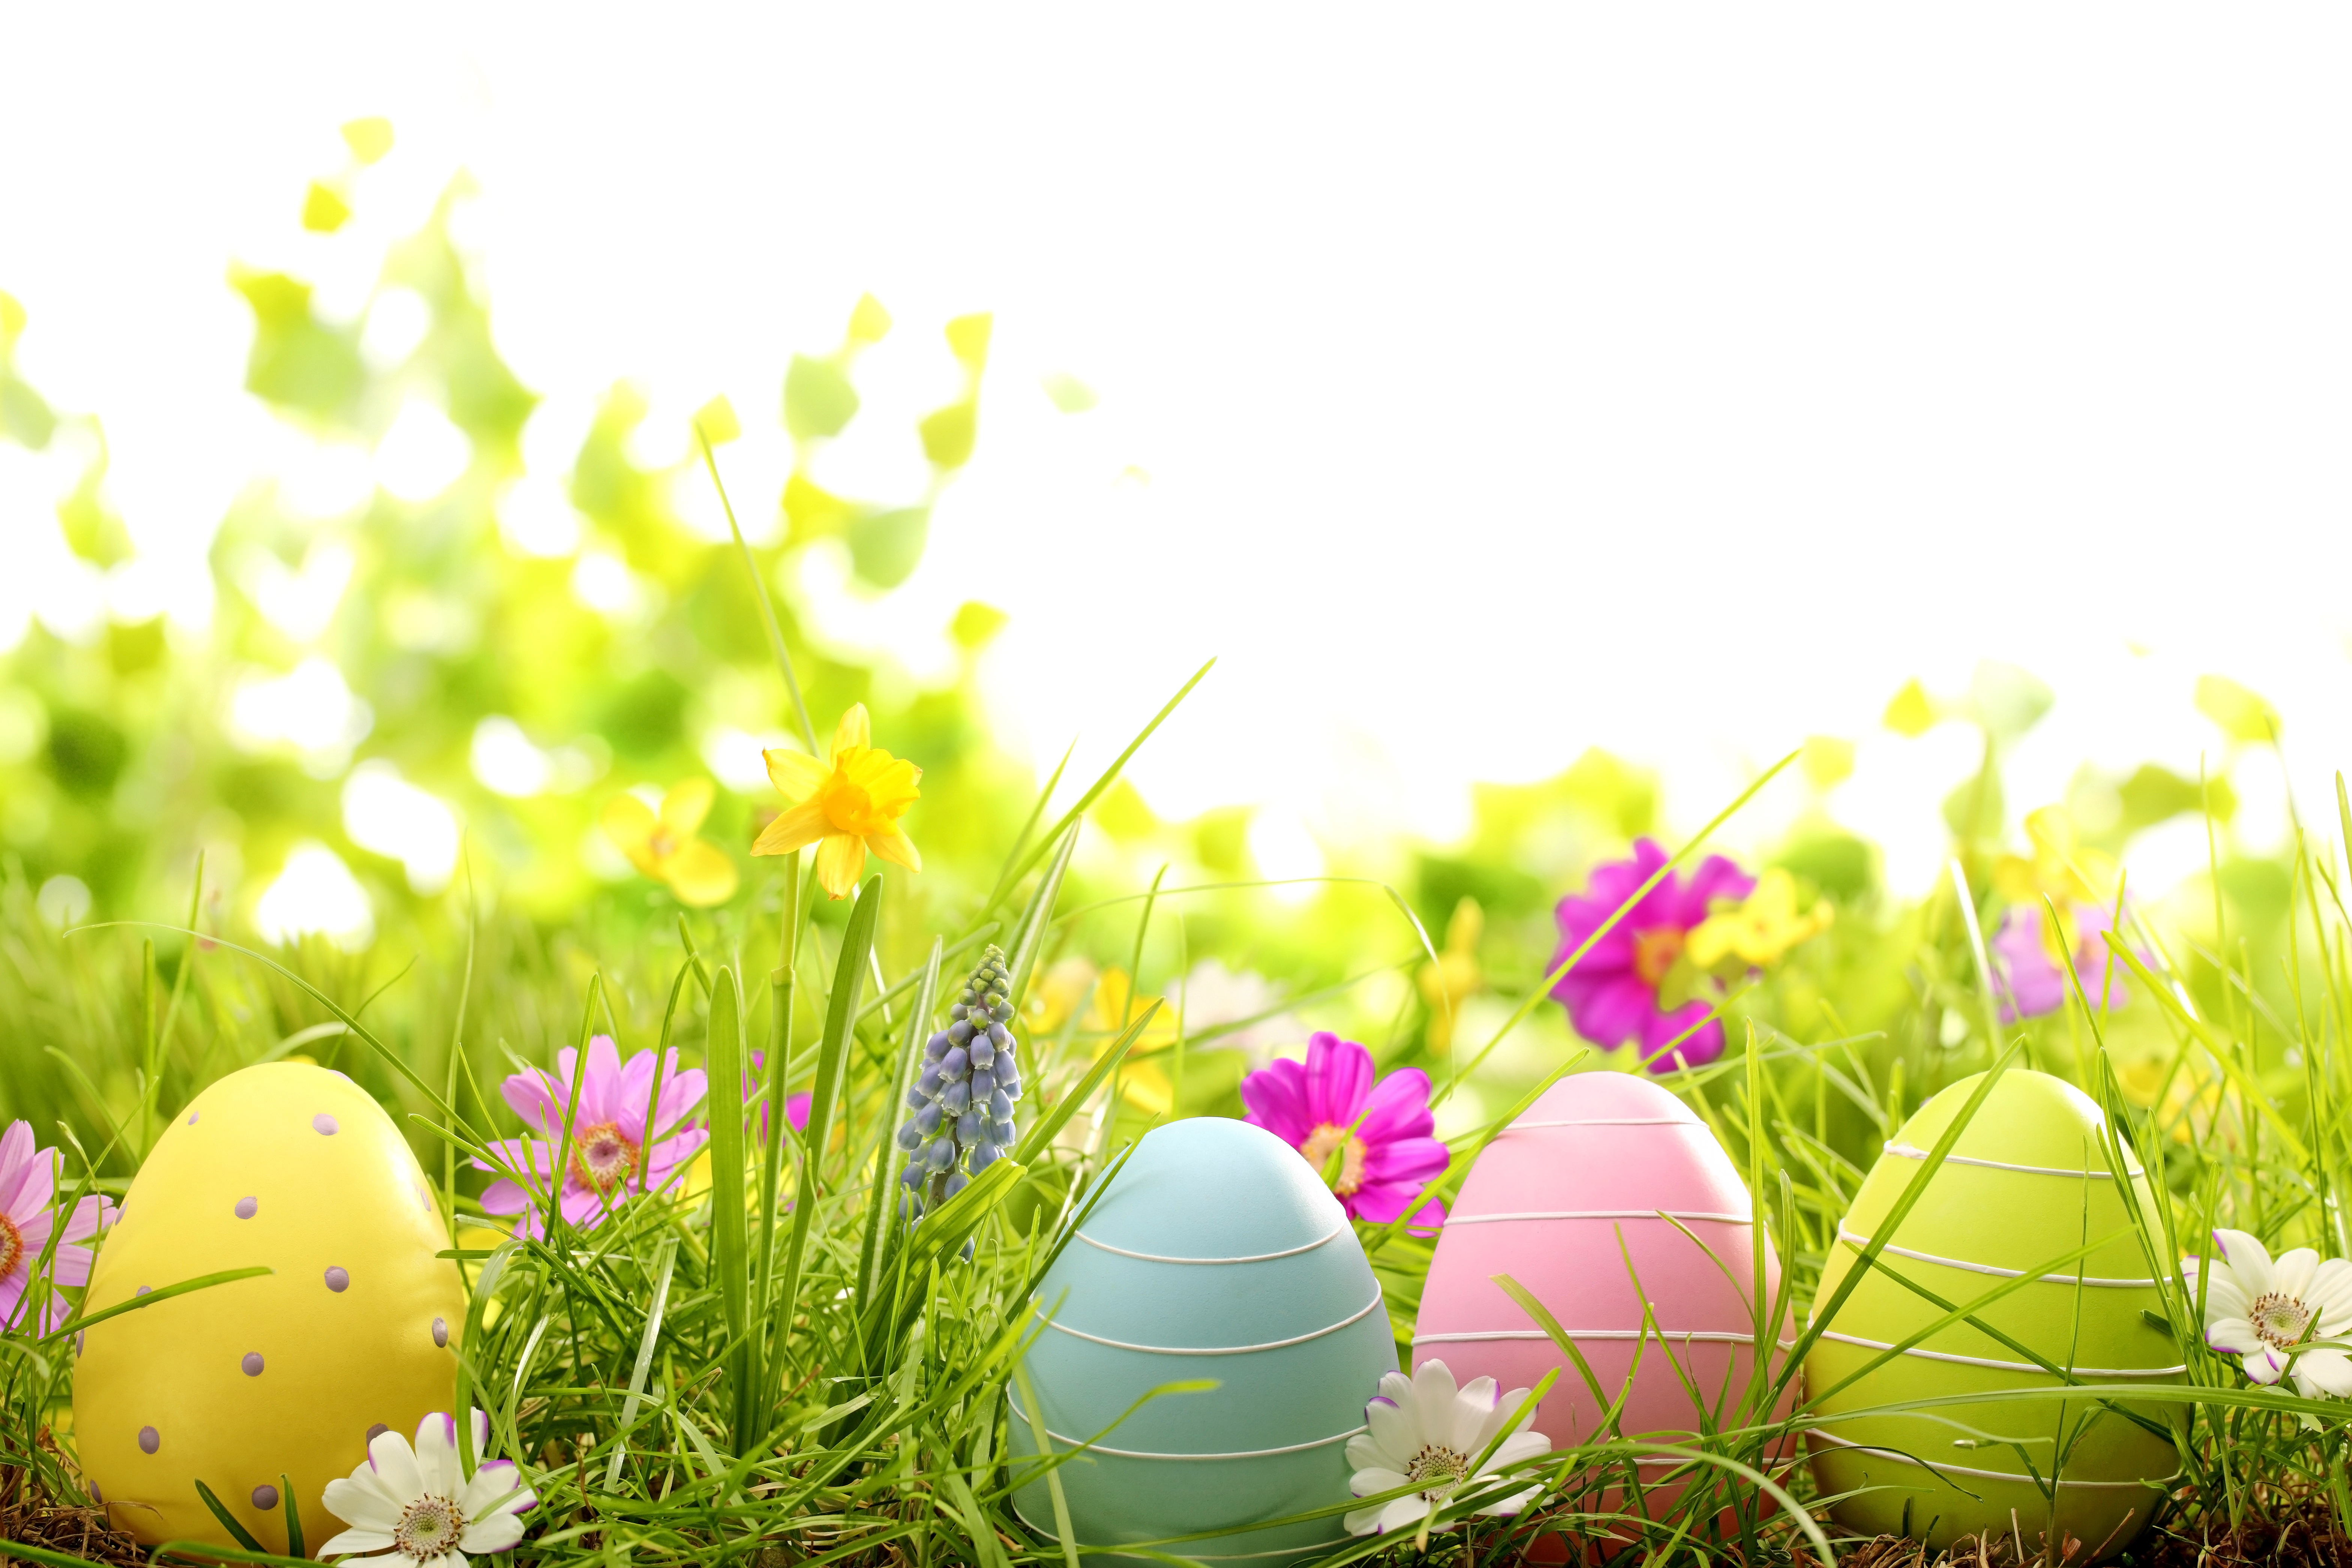 easter spring flowers eggs grass daisy camomile easter spring 6270x4180